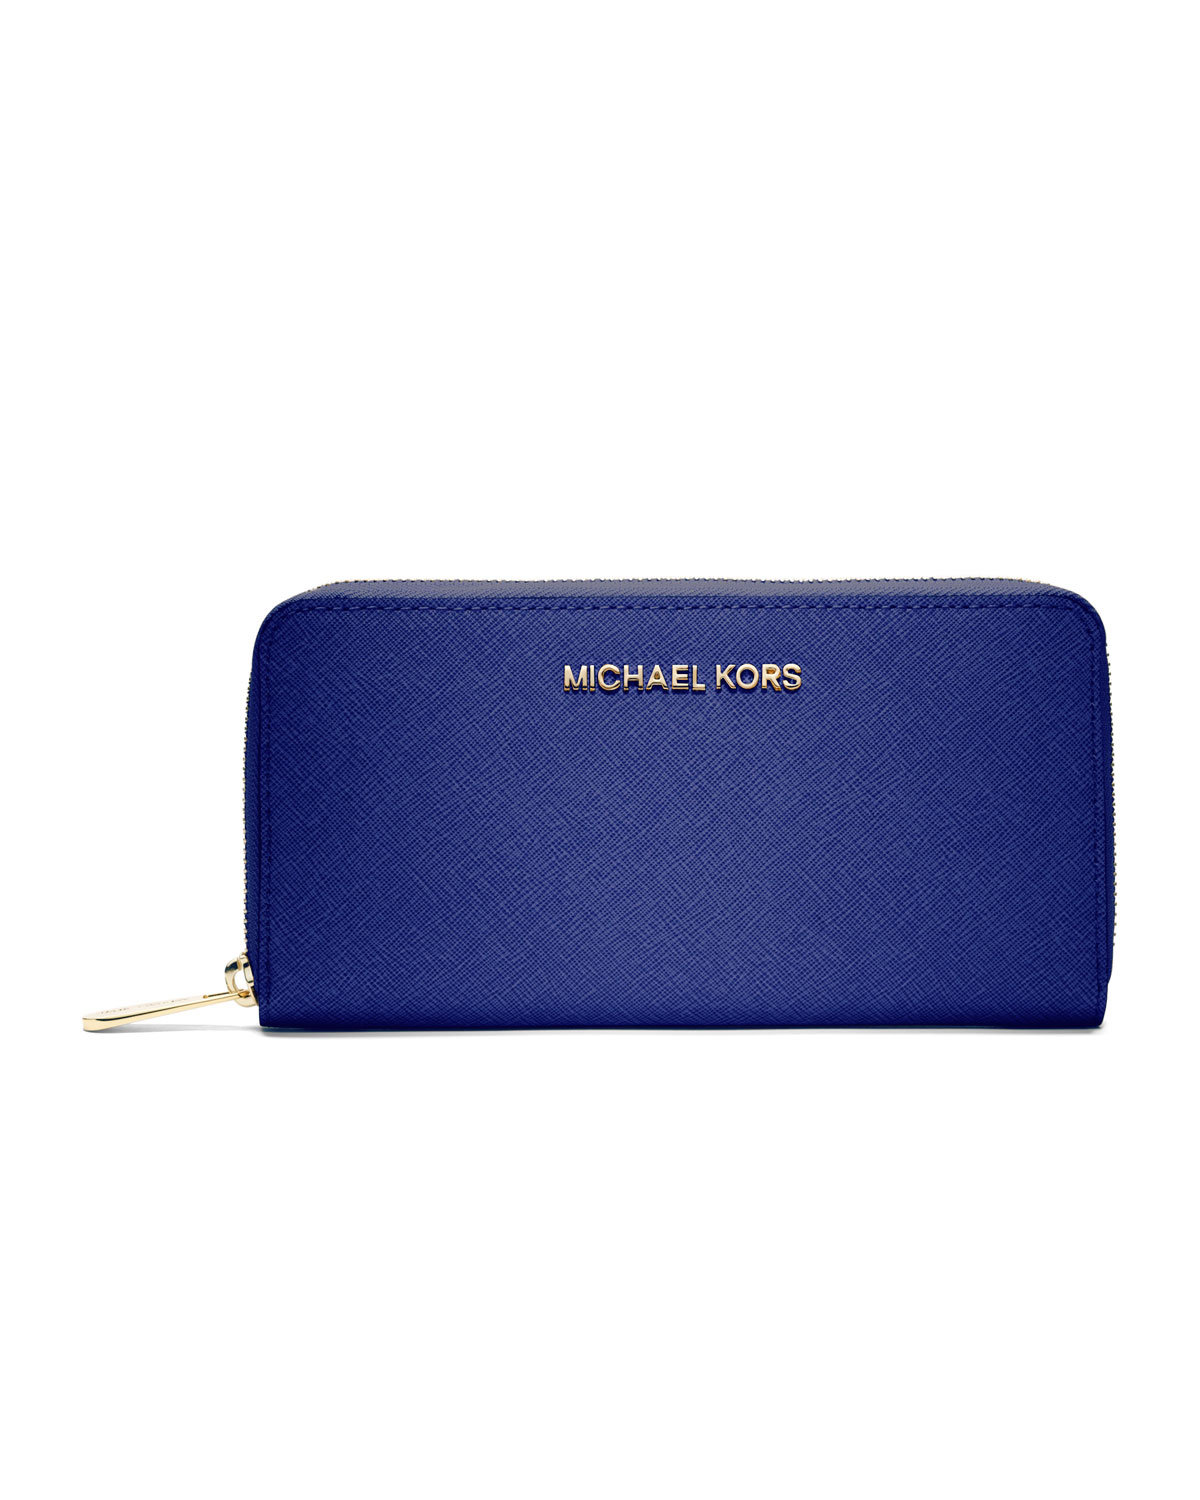 Michael Kors Wallet. Looking for a stylish wallet to tote the essentials? From clutches to wristlets, the chic, luxe MICHAEL Michael Kors style you love is here! Classic Kors Impeccable organization meets iconic design! Get that fabulously unmistakable MICHAEL Michael Kors look with a secure, structured zip-around wallet made from MK logo fabric.